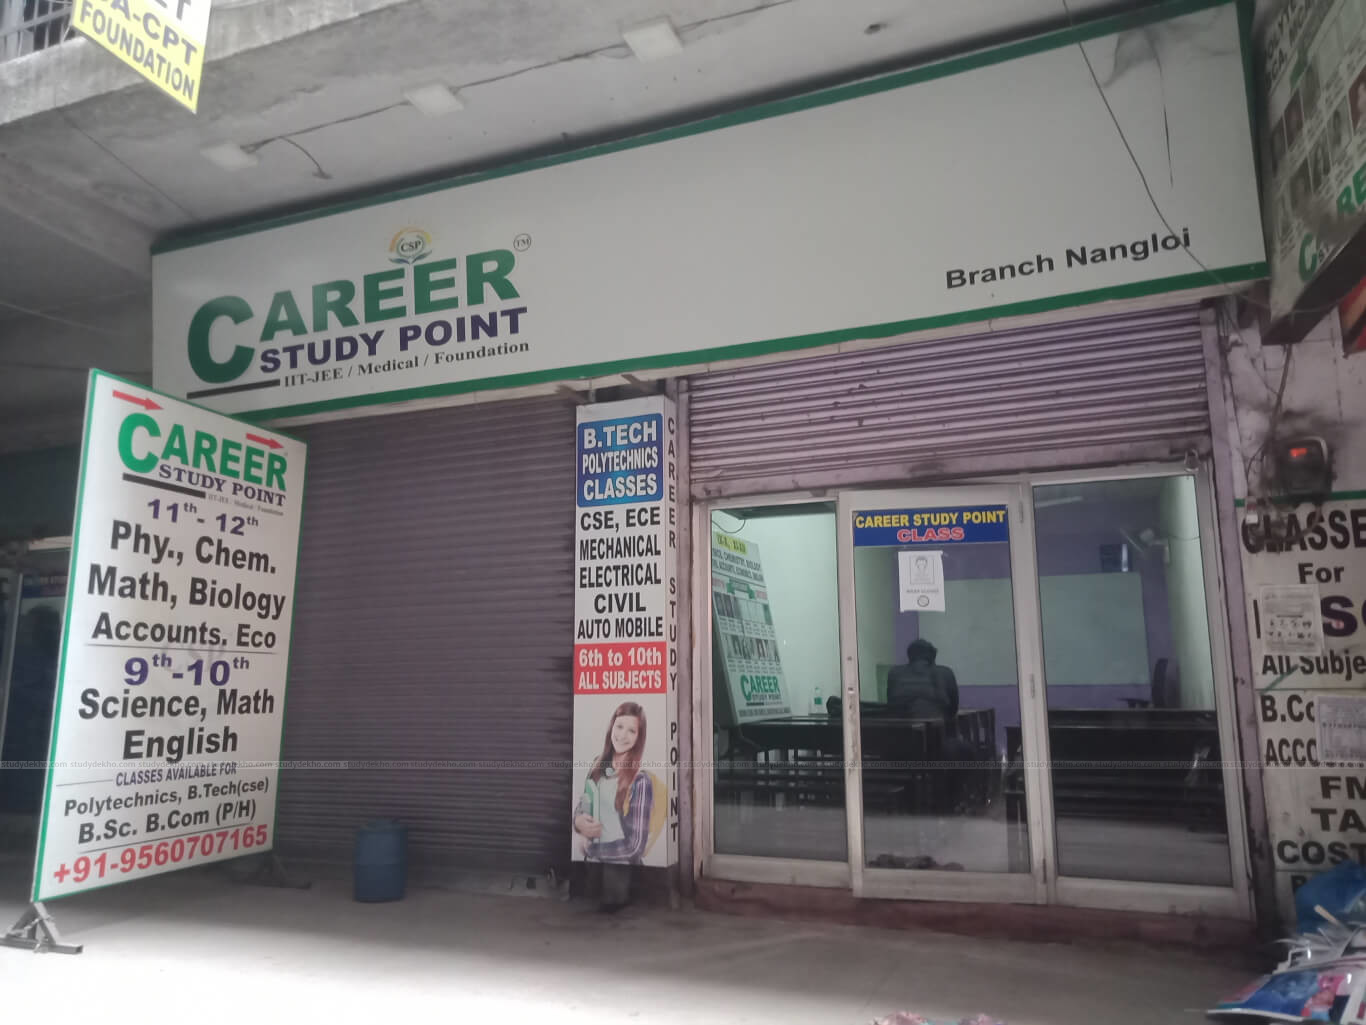 CAREER STUDY POINT Gallery